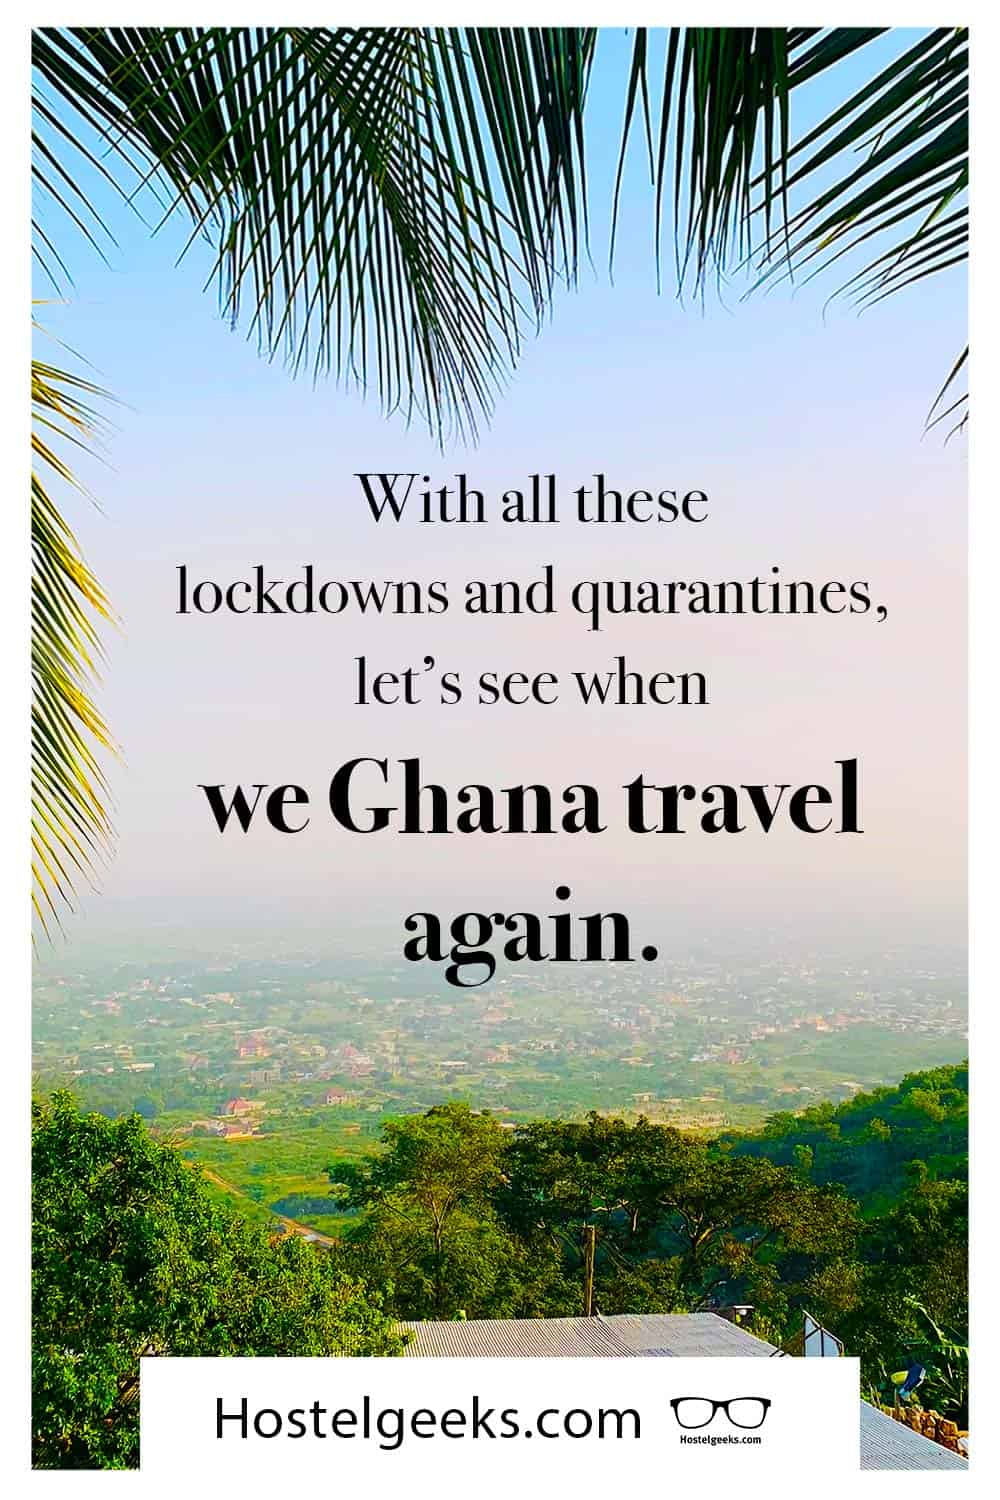 With all these lockdowns and quarantines, let's see when we Ghana travel again. (by Hostelgeeks ❤️)